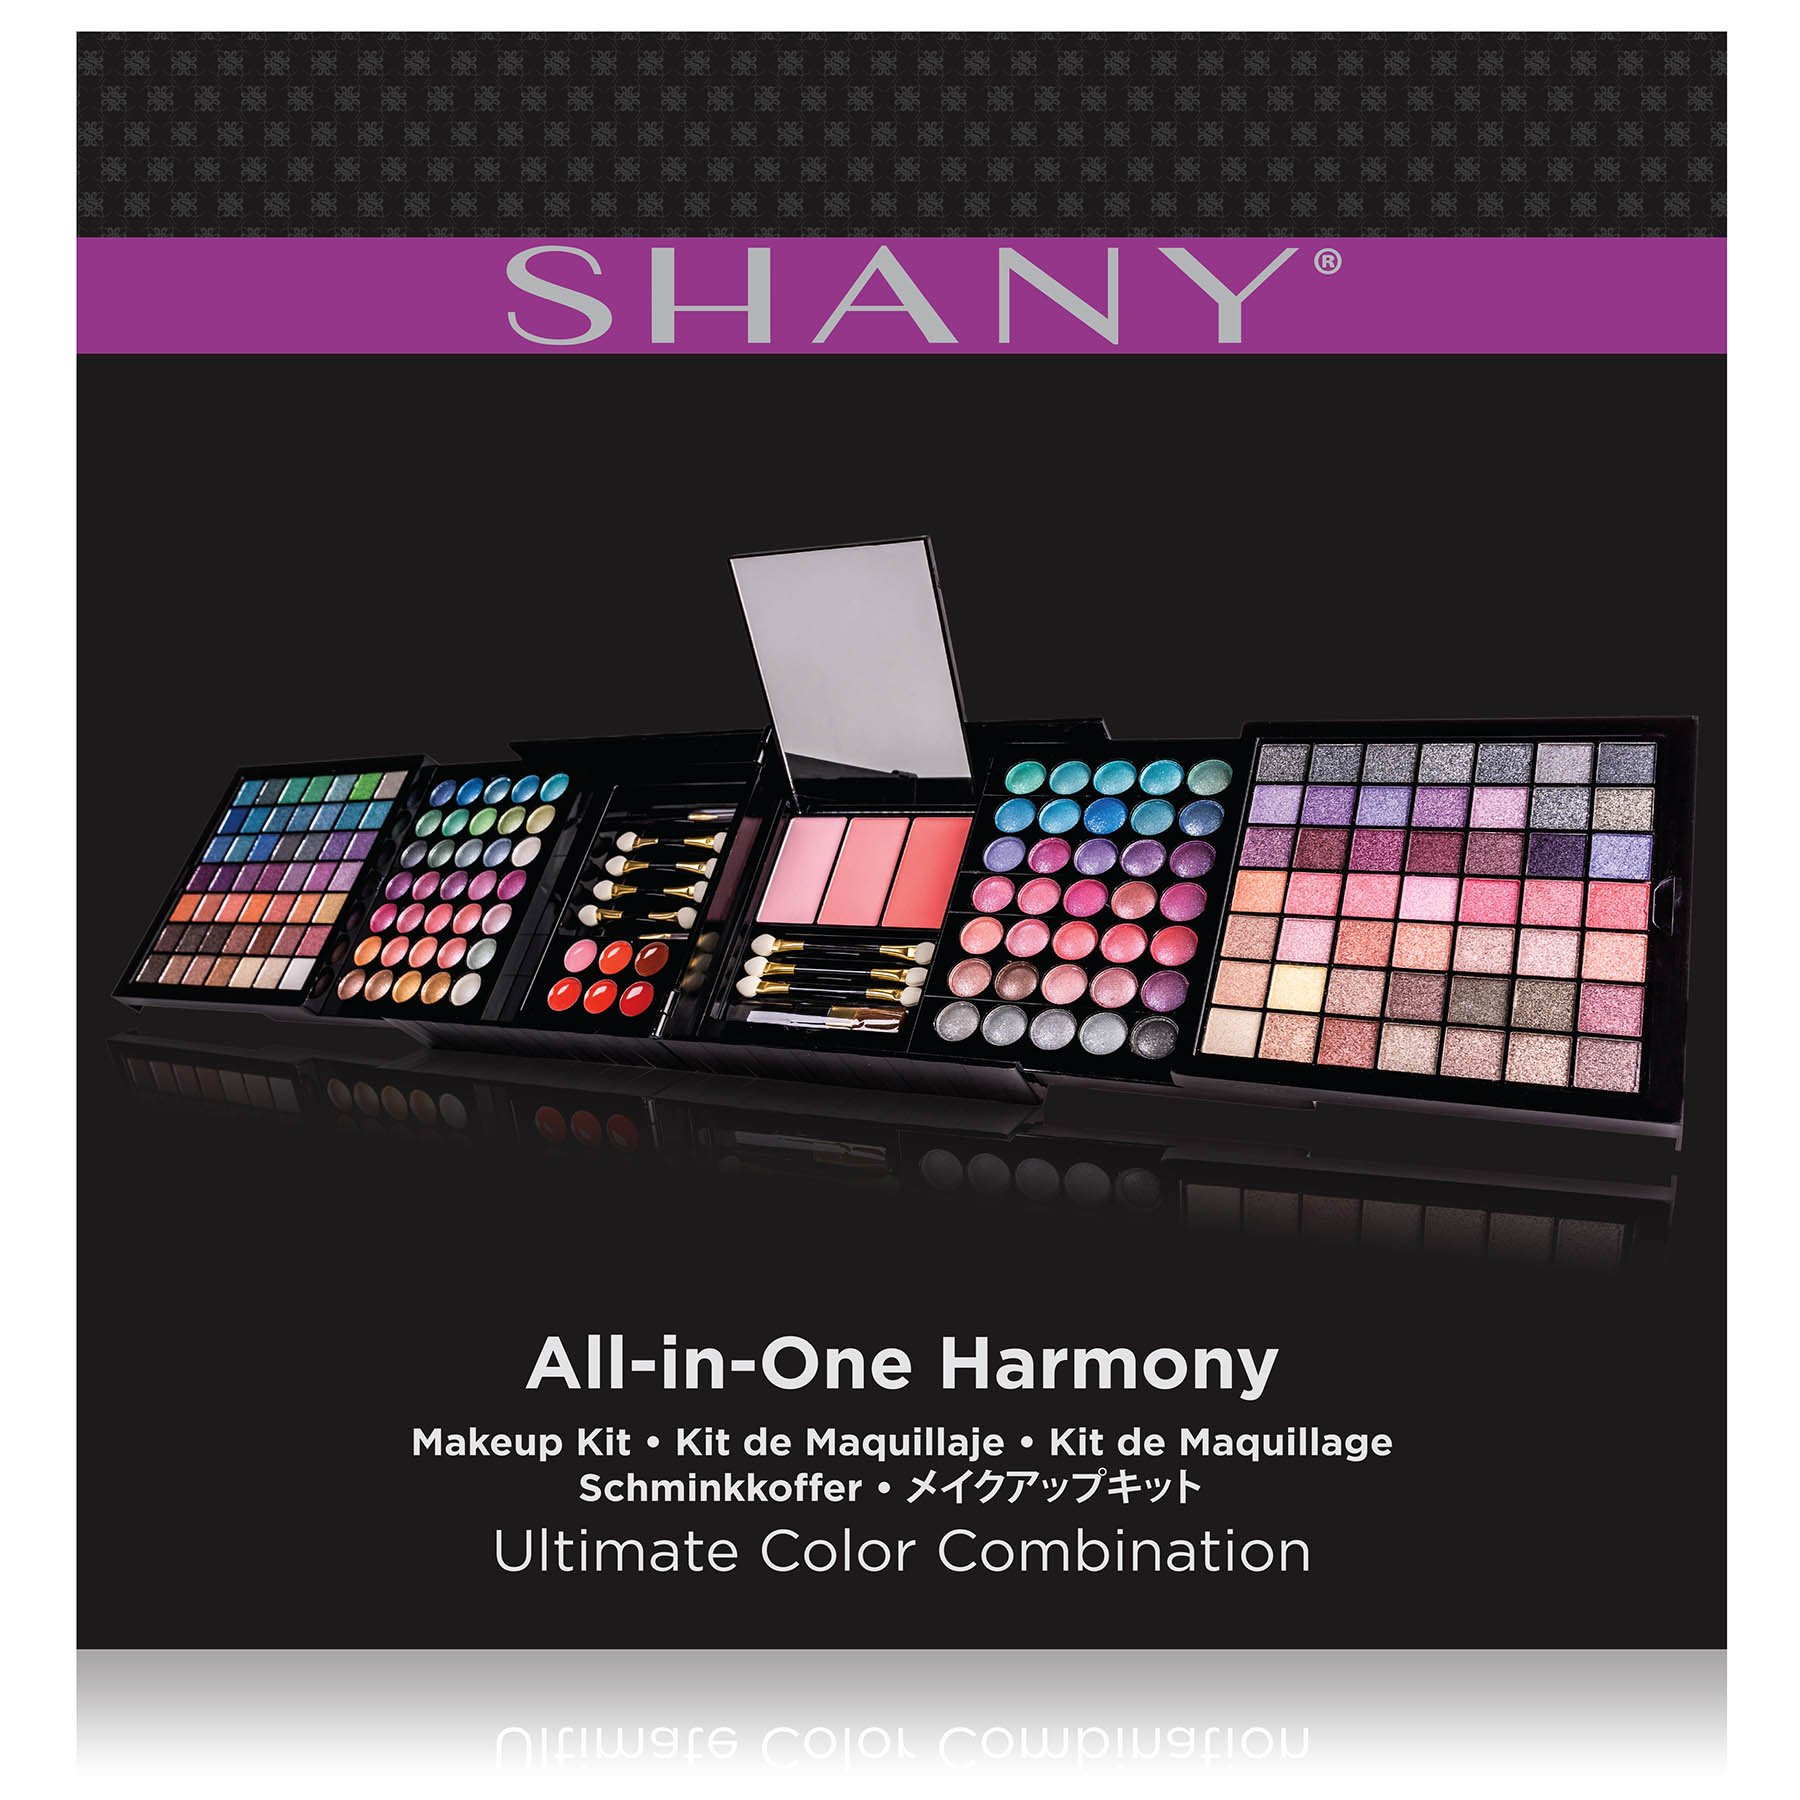 SHANY All In One Harmony Makeup Kit - Ultimate Color Combination - New Edition by SHANY Cosmetics (Image #5)